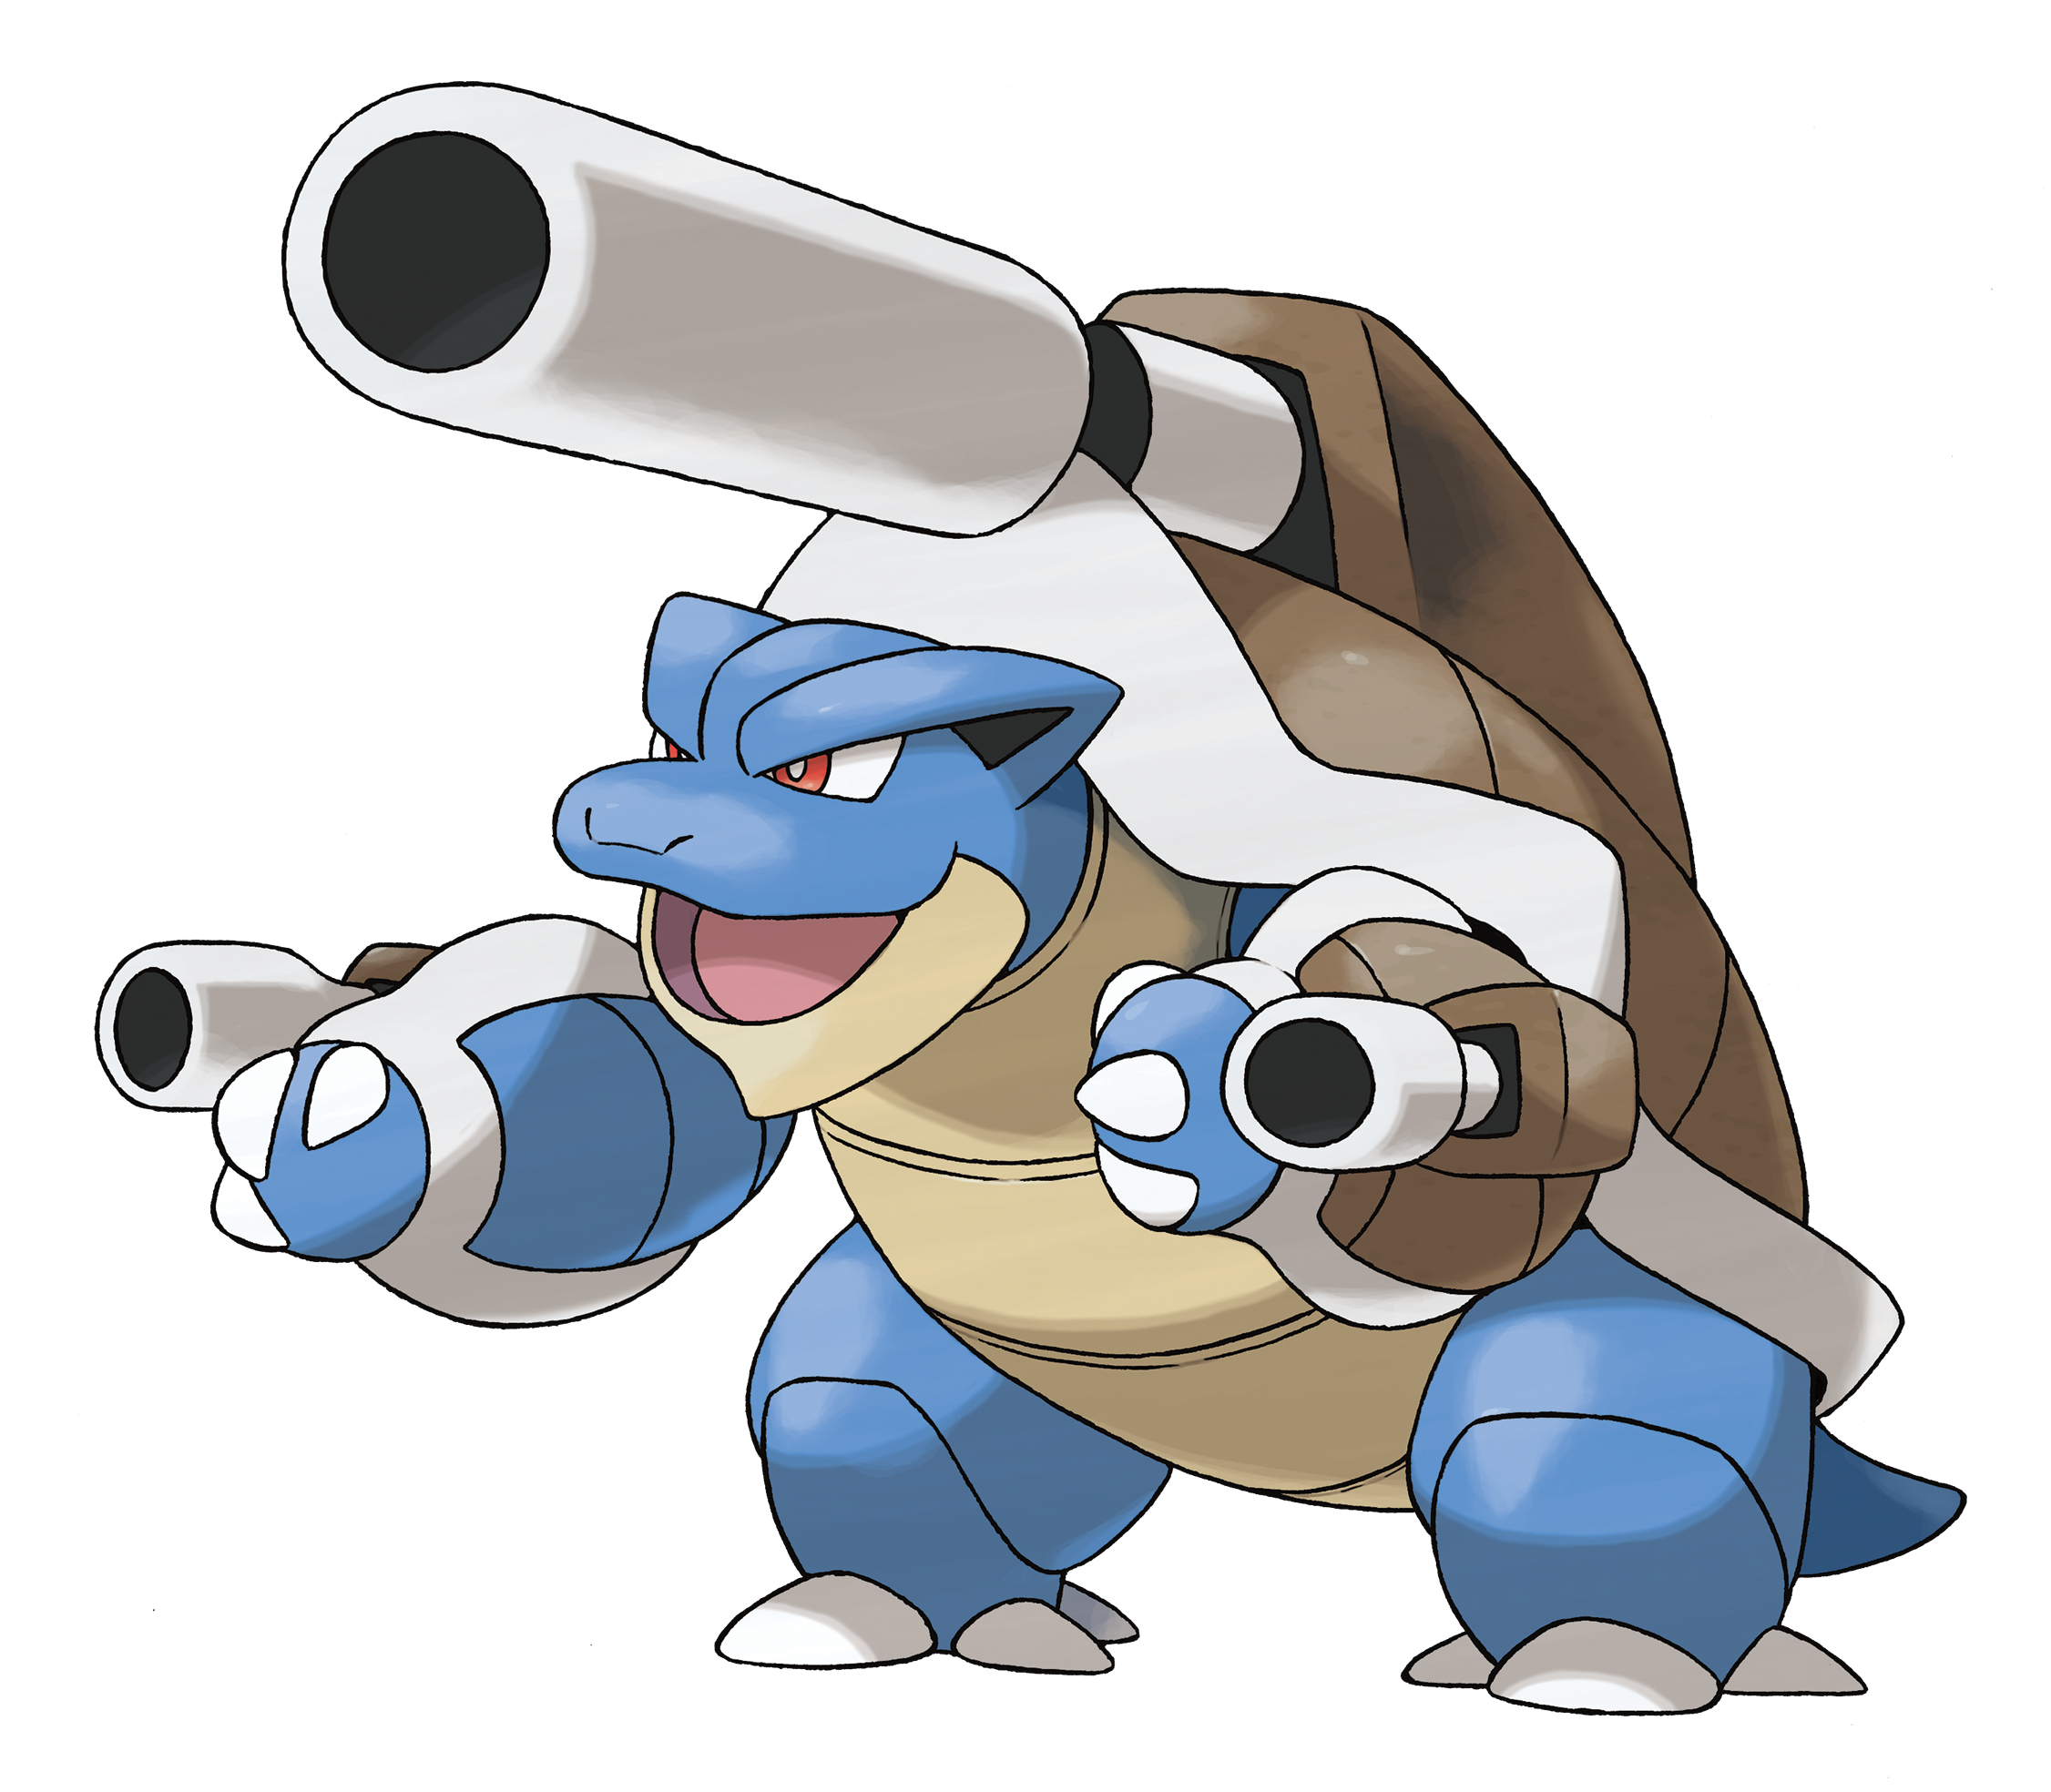 Mega tortank pokemon - Pokemon tortank mega evolution ...